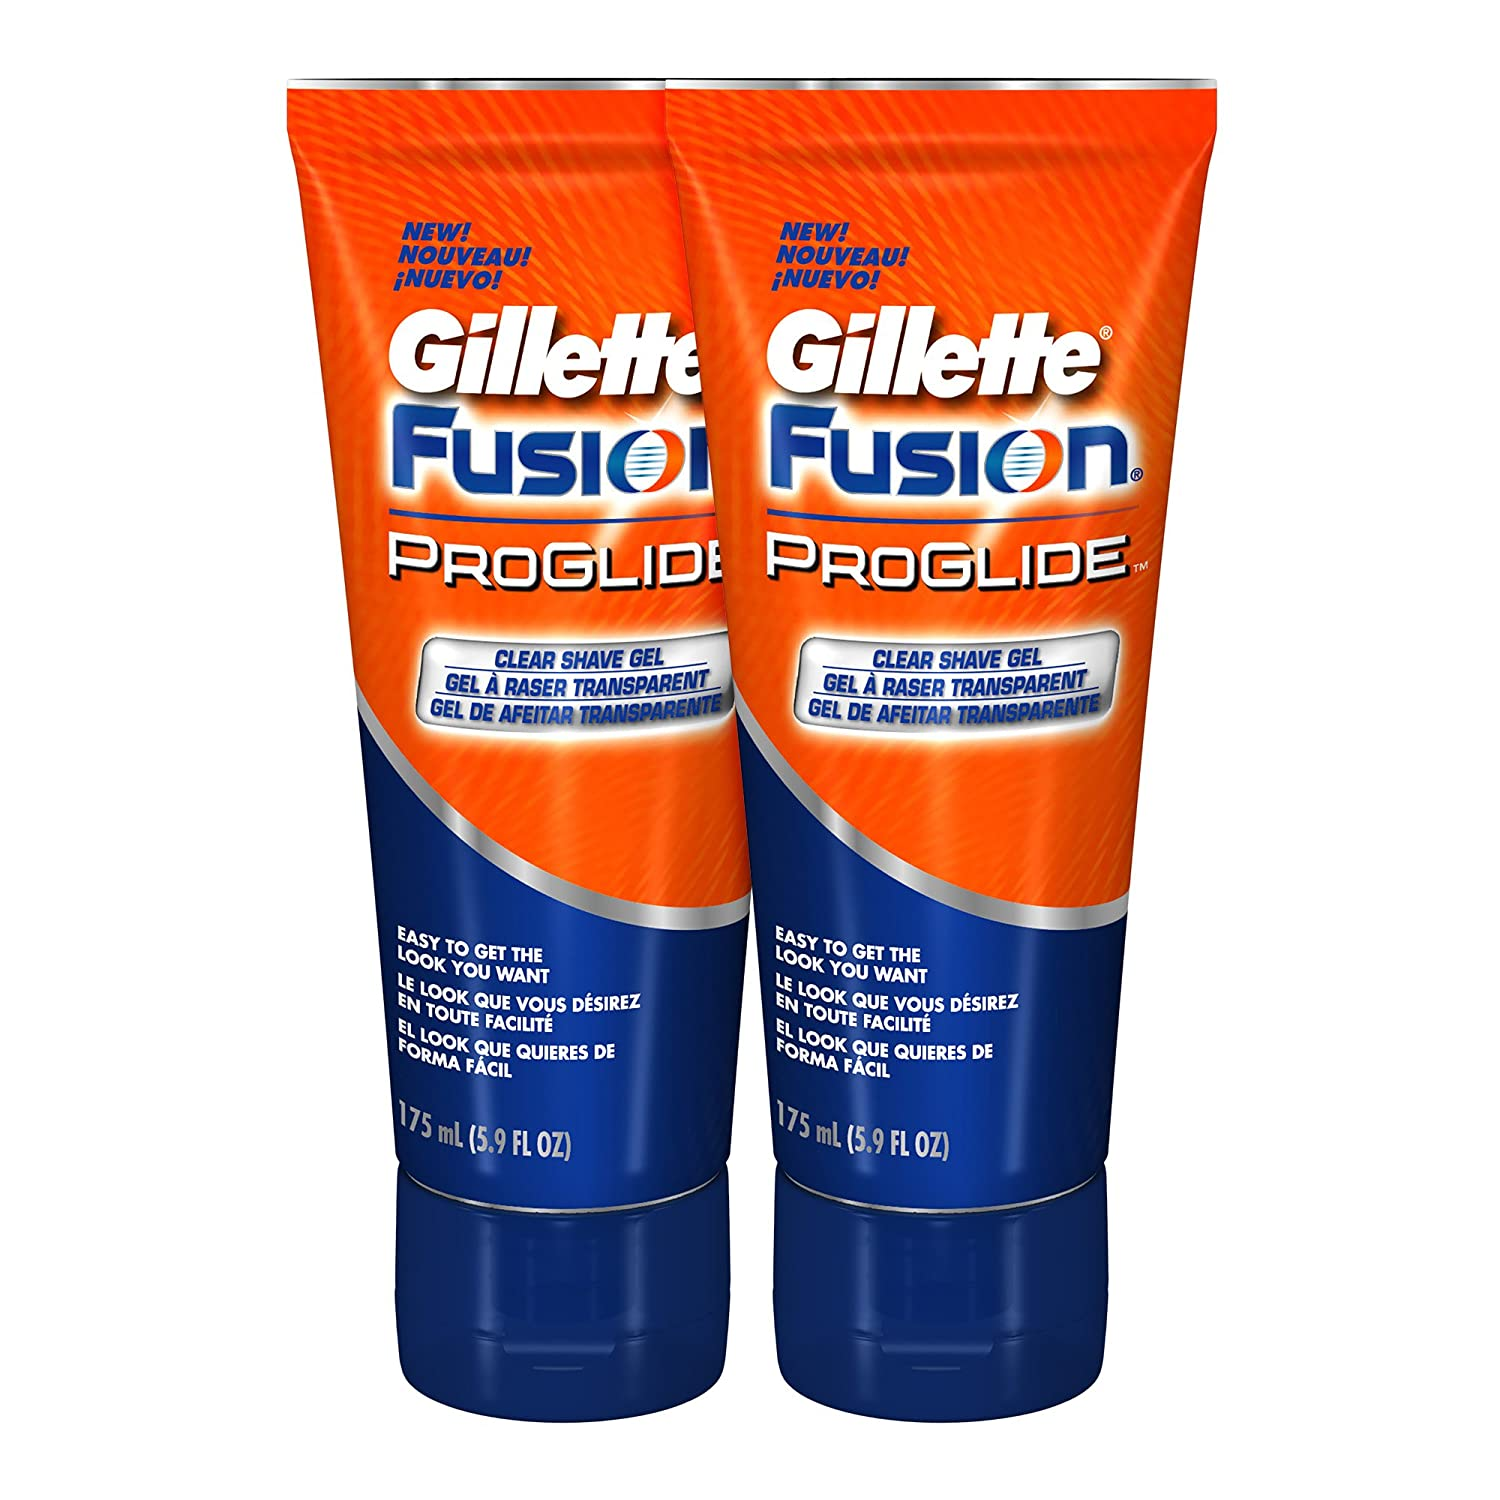 Gillette Fusion ProGlide Shave Gel, Clear, 5.9 Ounce (Pack of 2)